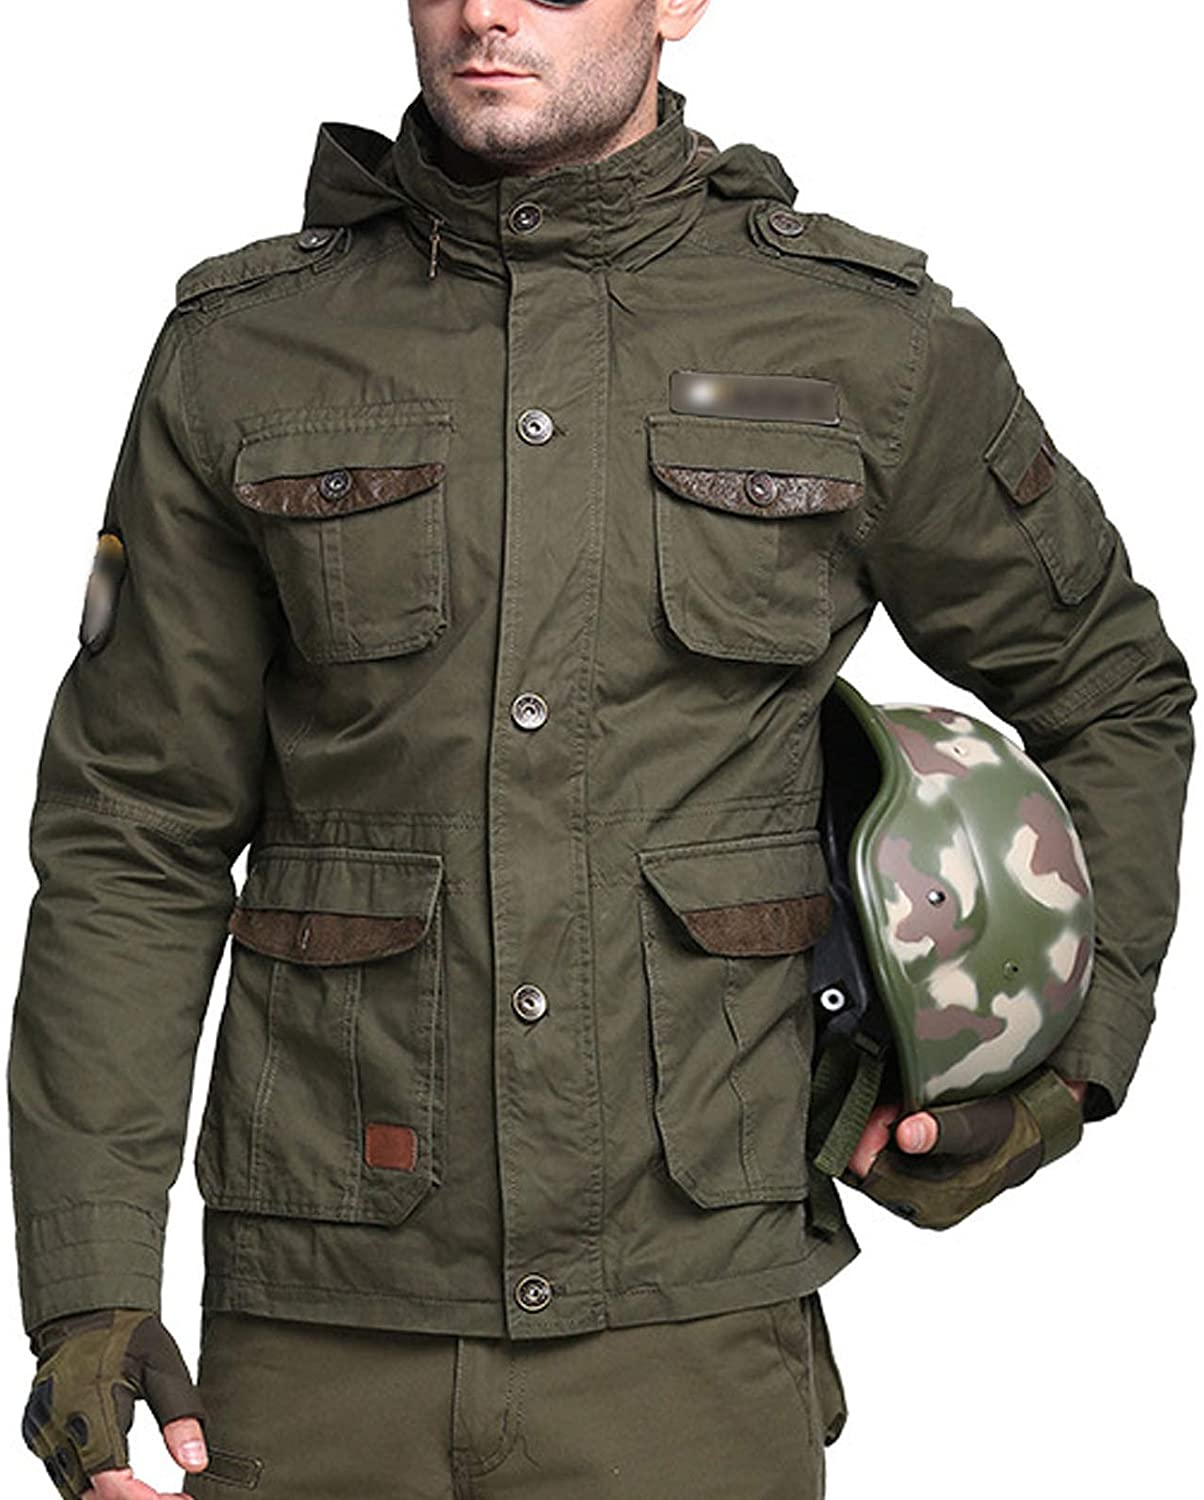 Flygo Men's Classic M65 Tactical Military Jacket Outdoor Multi-Pockets Windbreaker